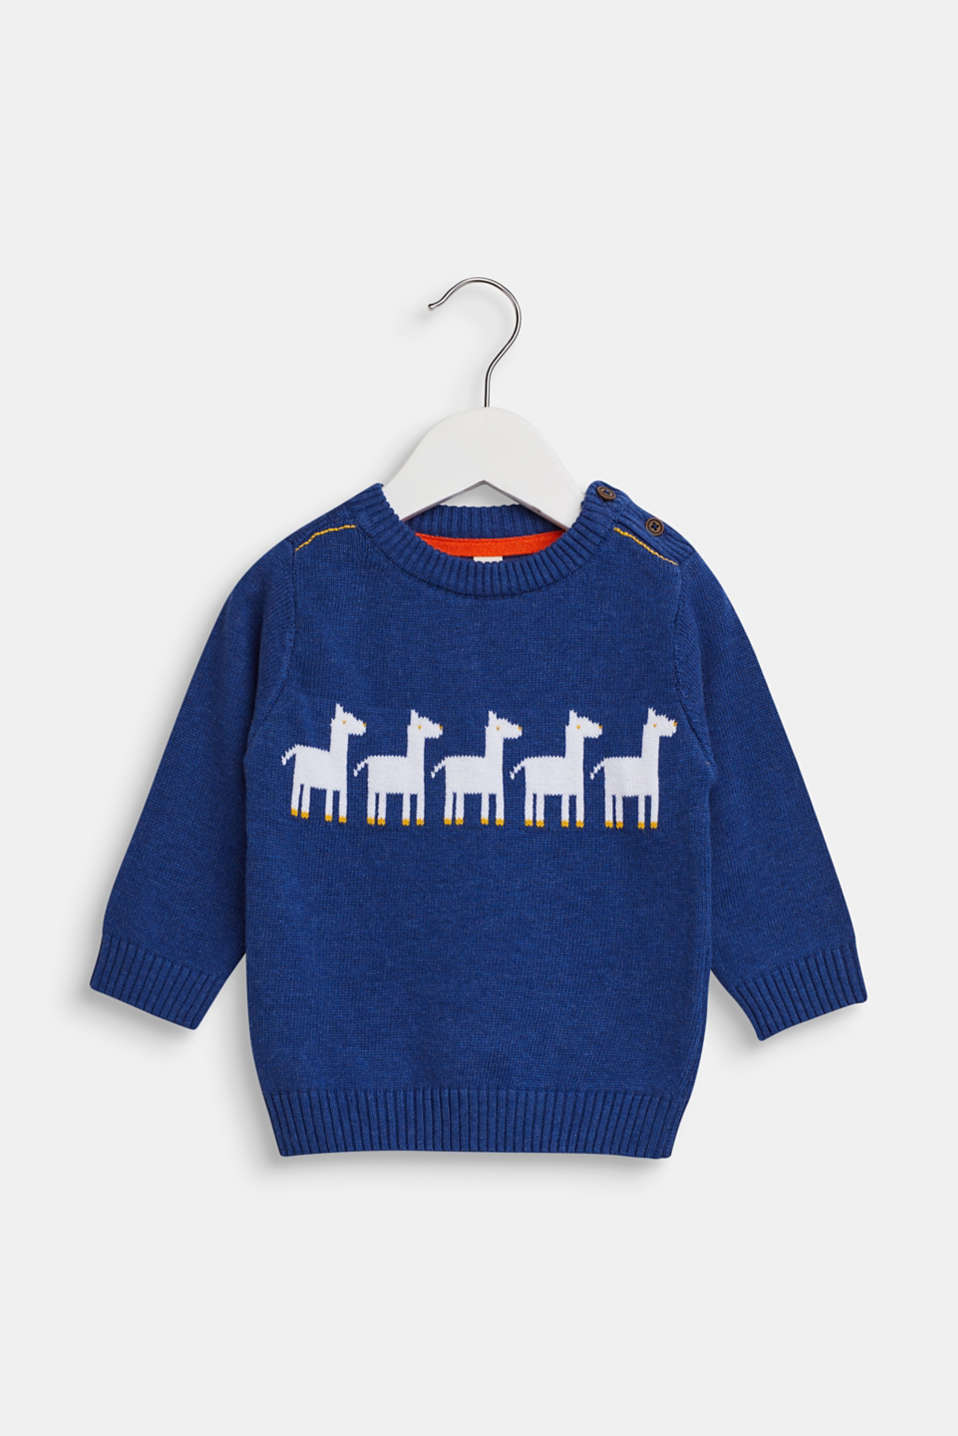 Esprit - Jumper with llama intarsia, 100% cotton